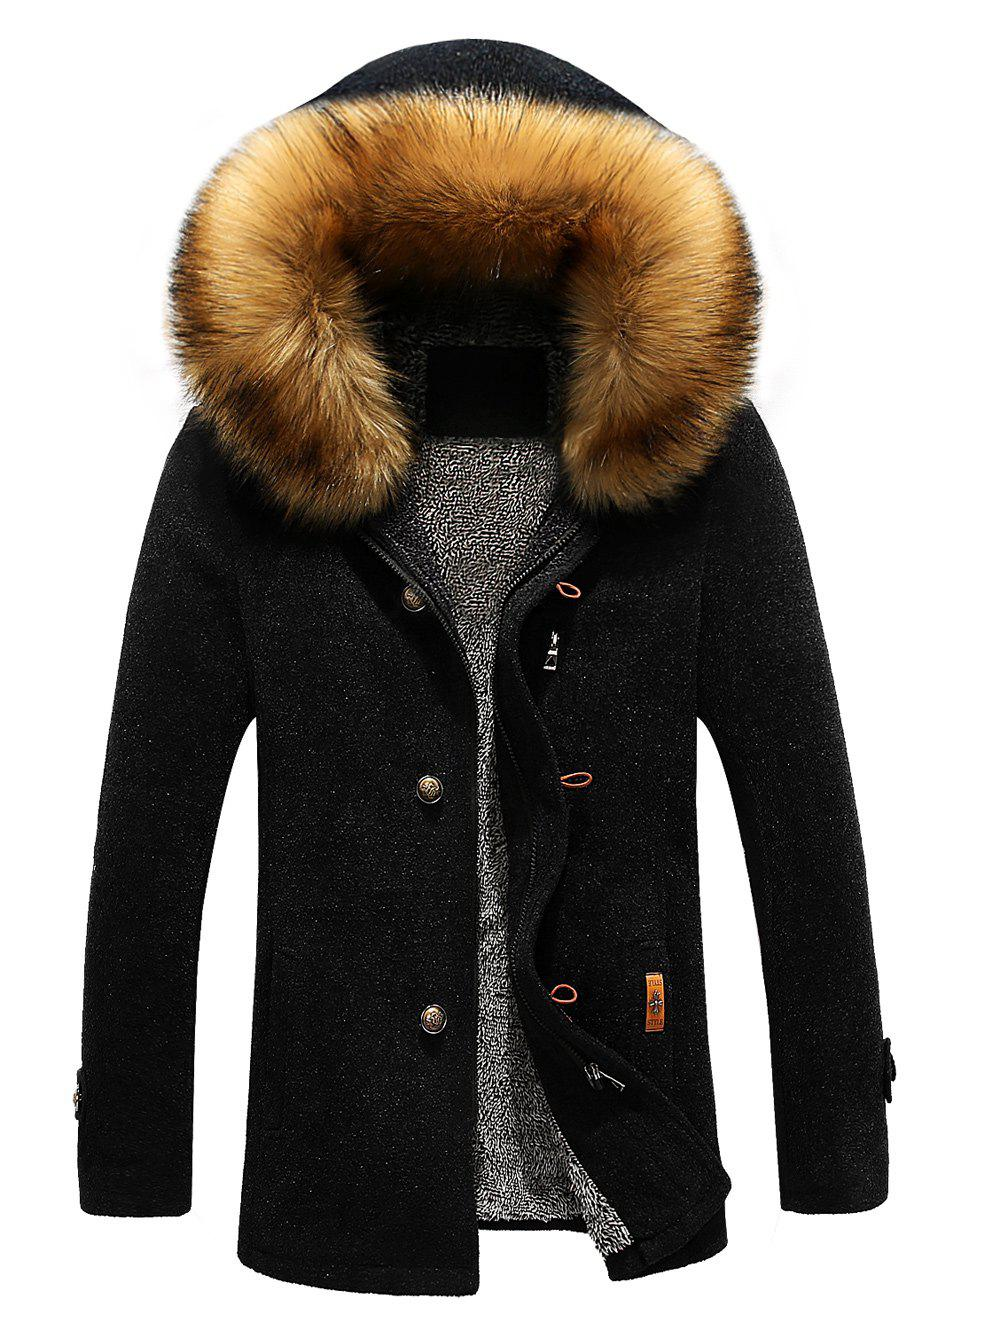 Patch Design Zipper-Up Fur Hooded Jacket, BLACK, M in Jackets ...